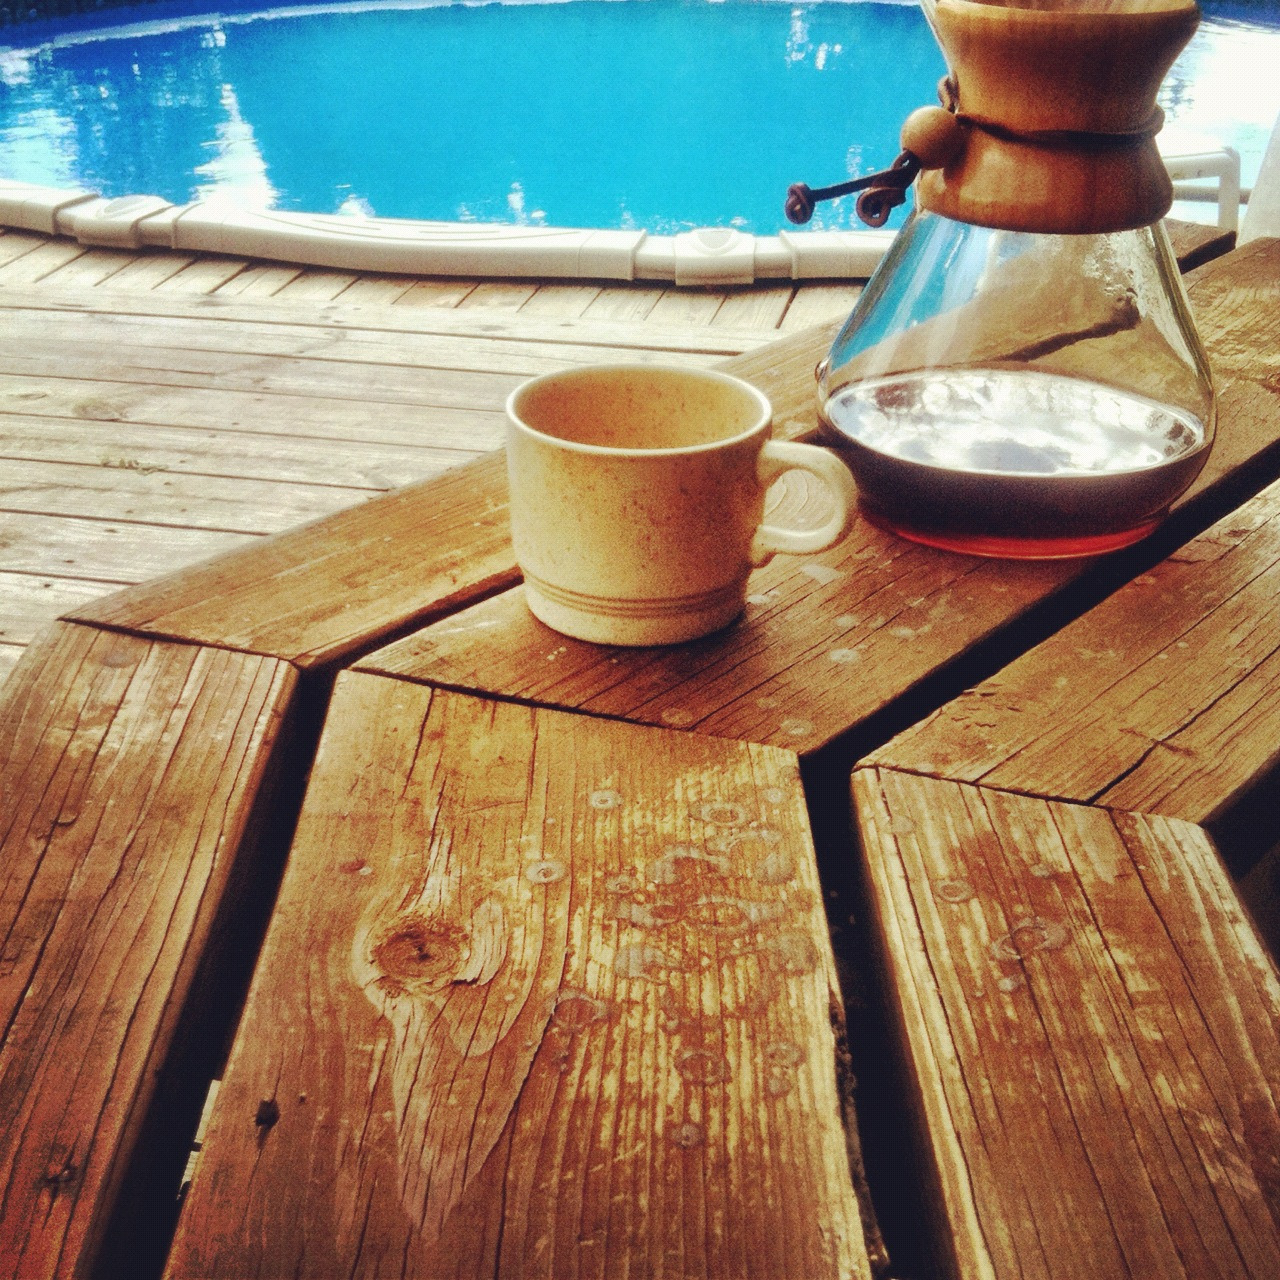 Poolside this morning. Drop Coffee's Guatemala La Folie is kinda like a caramel apple. Chemex—31g:500mL